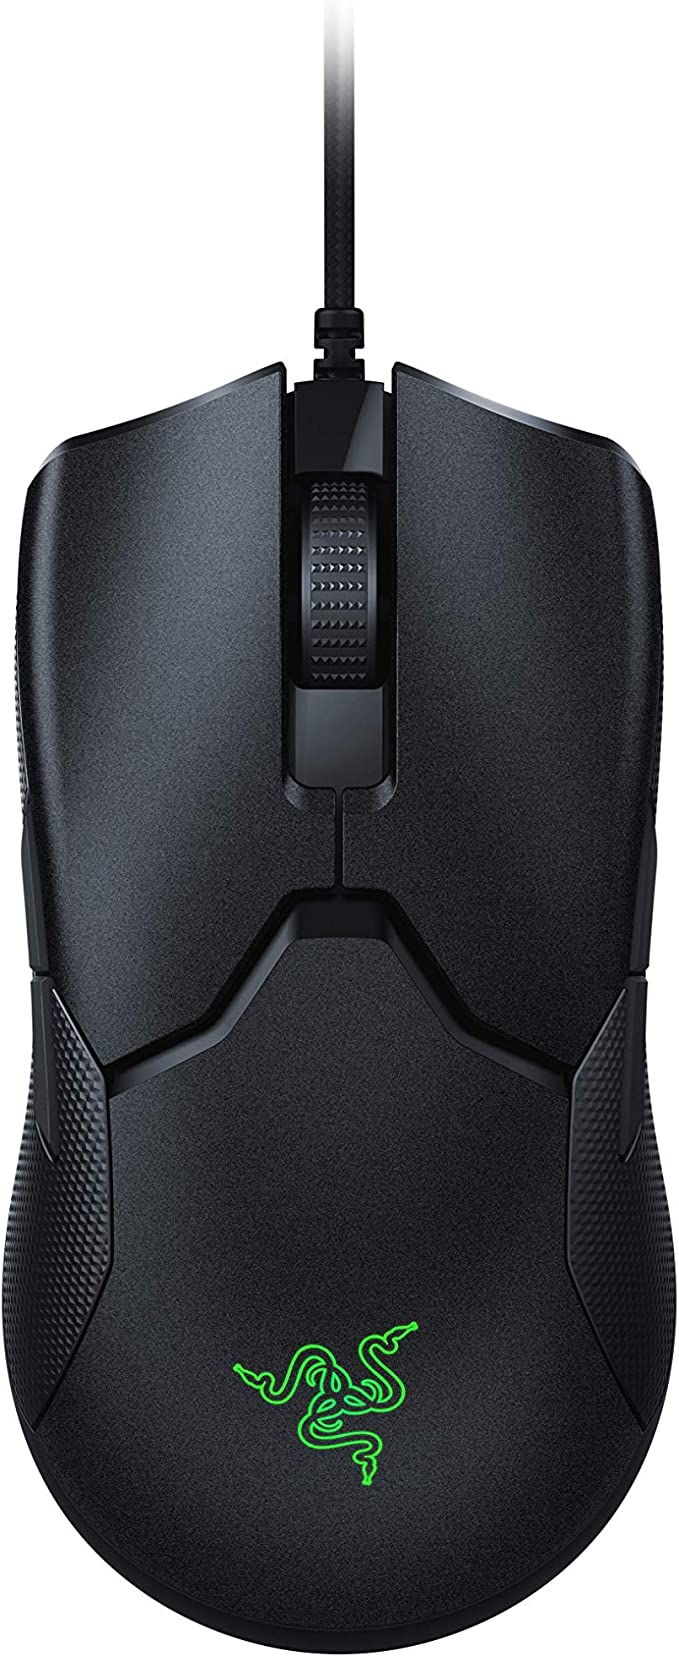 Amazon.com: Razer Viper Ultralight Ambidextrous Wired Gaming Mouse: Fastest Mouse Switch in Gaming - 16,000 DPI Optical Sensor - Chroma RGB Lighting - 8 Programmable Buttons - Drag-Free Cord: Computers & Accessories